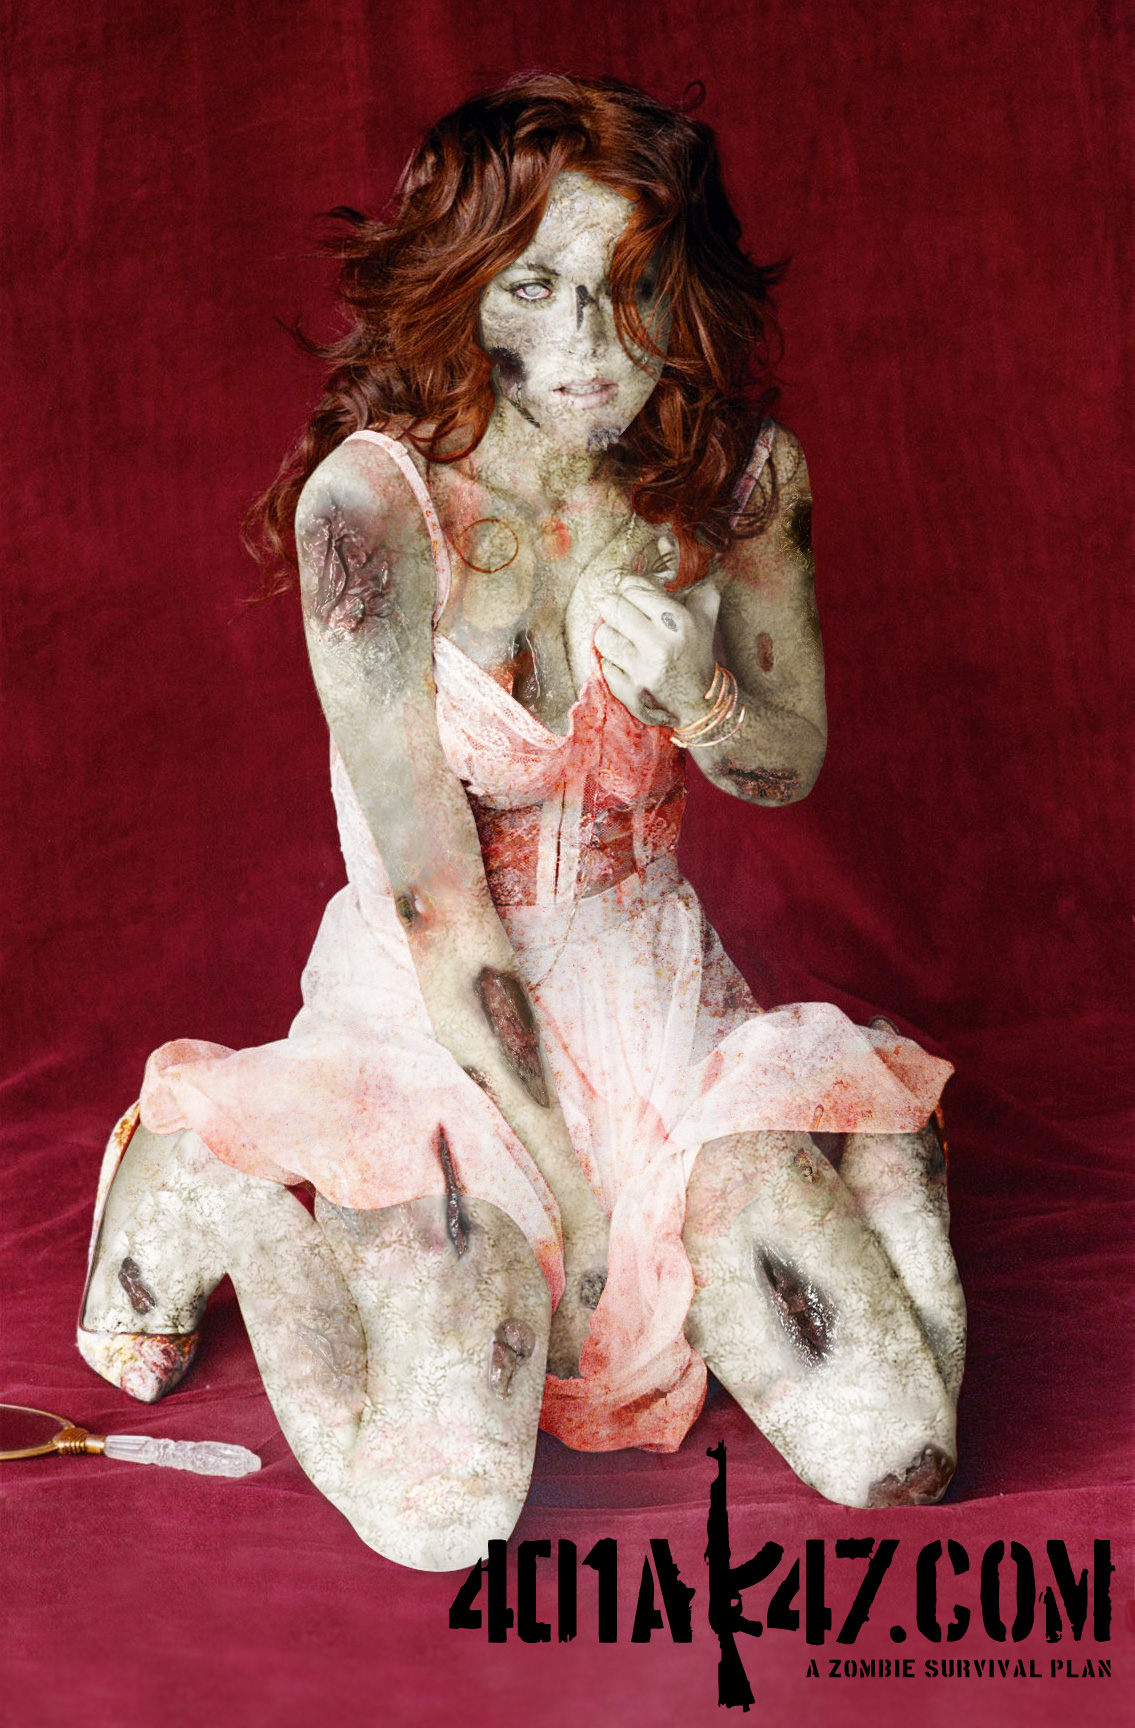 Lindsay Lohan Zombie Pinup sexy hot babe pic - celebrity zombie pin up girl - zombie art